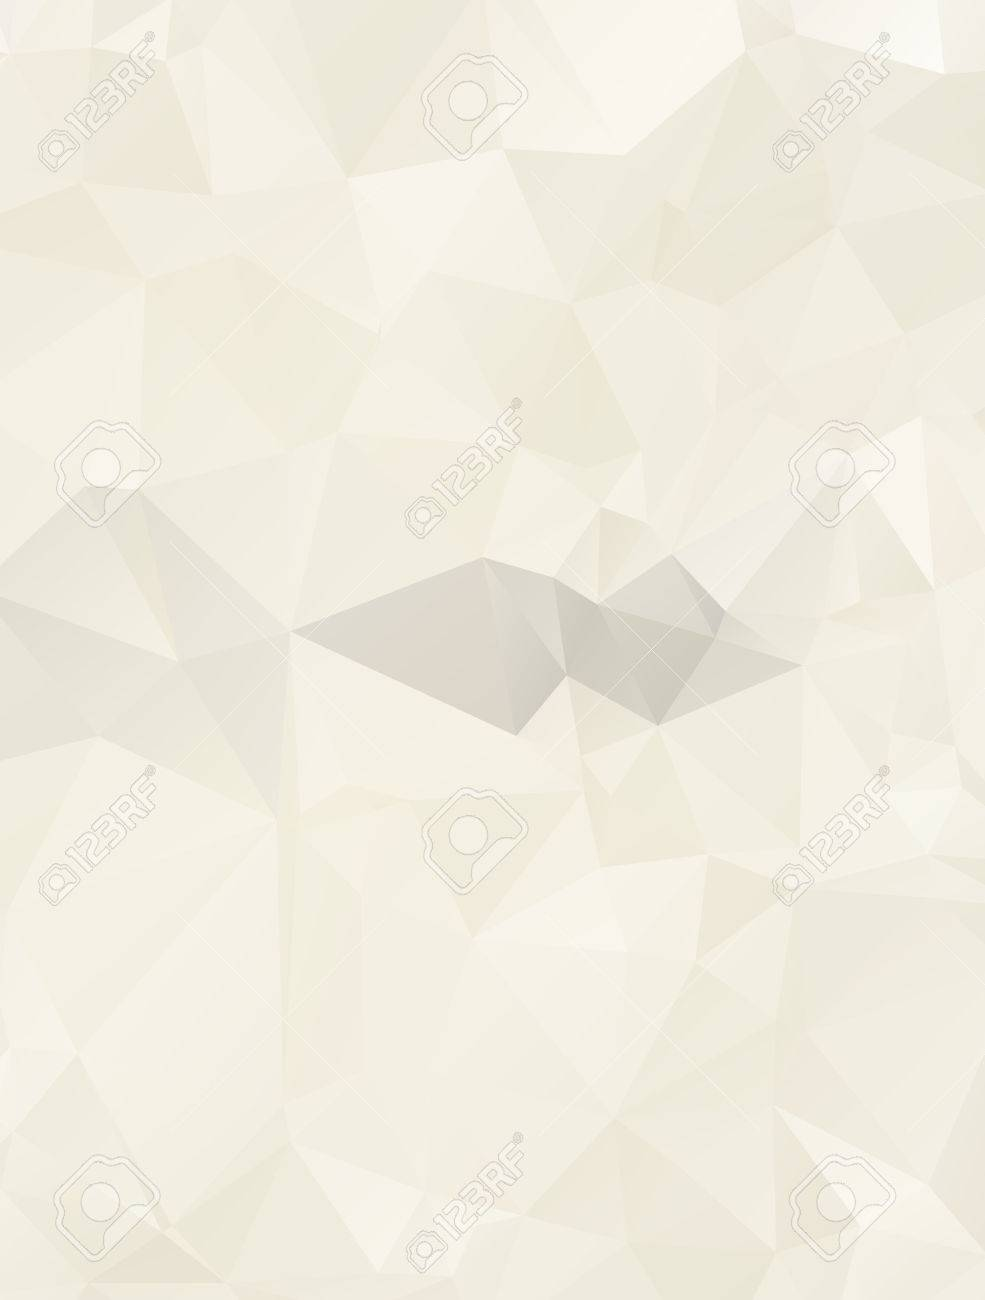 Abstract multicolor background. Vector polygonal design illustration graphic - 54858772